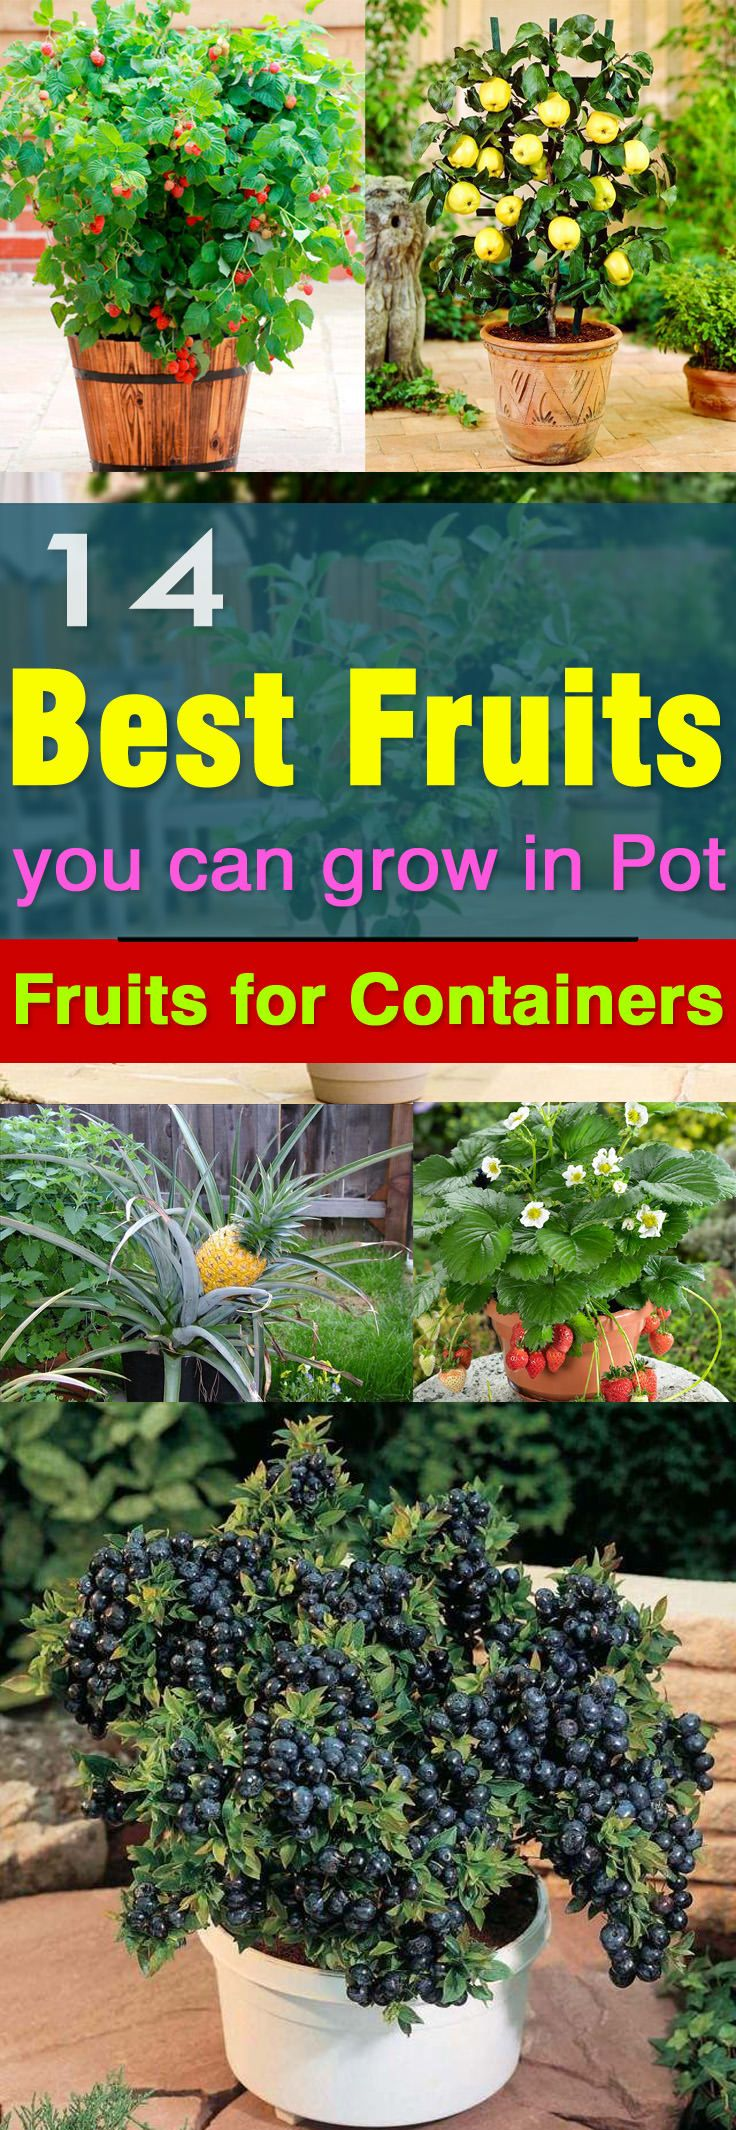 Container Vegetable Garden Ideas container vegetable gardening Best Fruits To Grow In Pots